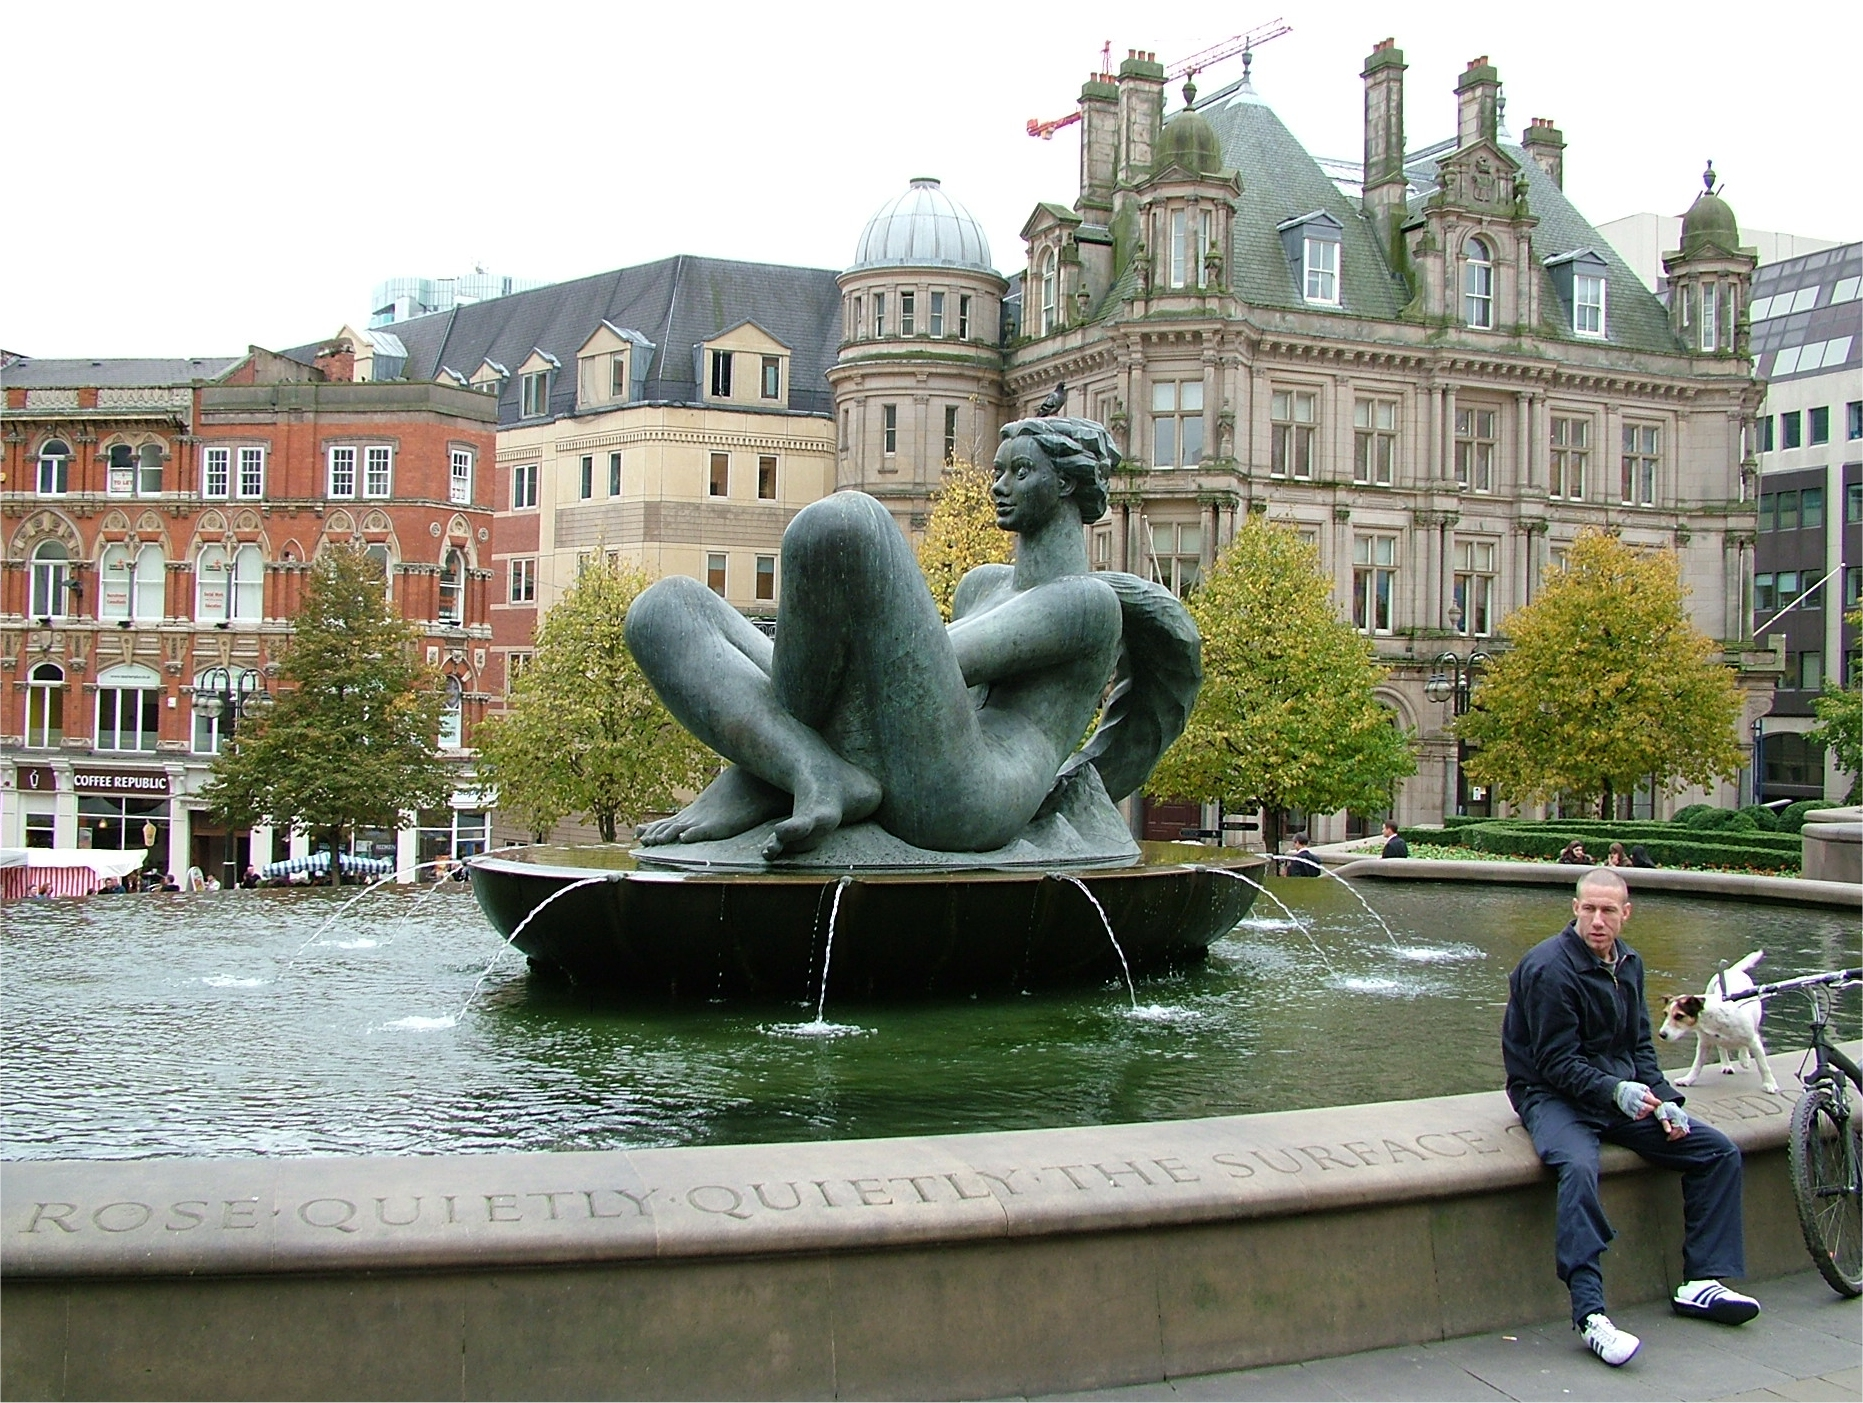 The_River_aka_The_Floozie_in_the_Jacuzzi_-_Victoria_Square_-_Birmingham_-_2005-10-13.jpg